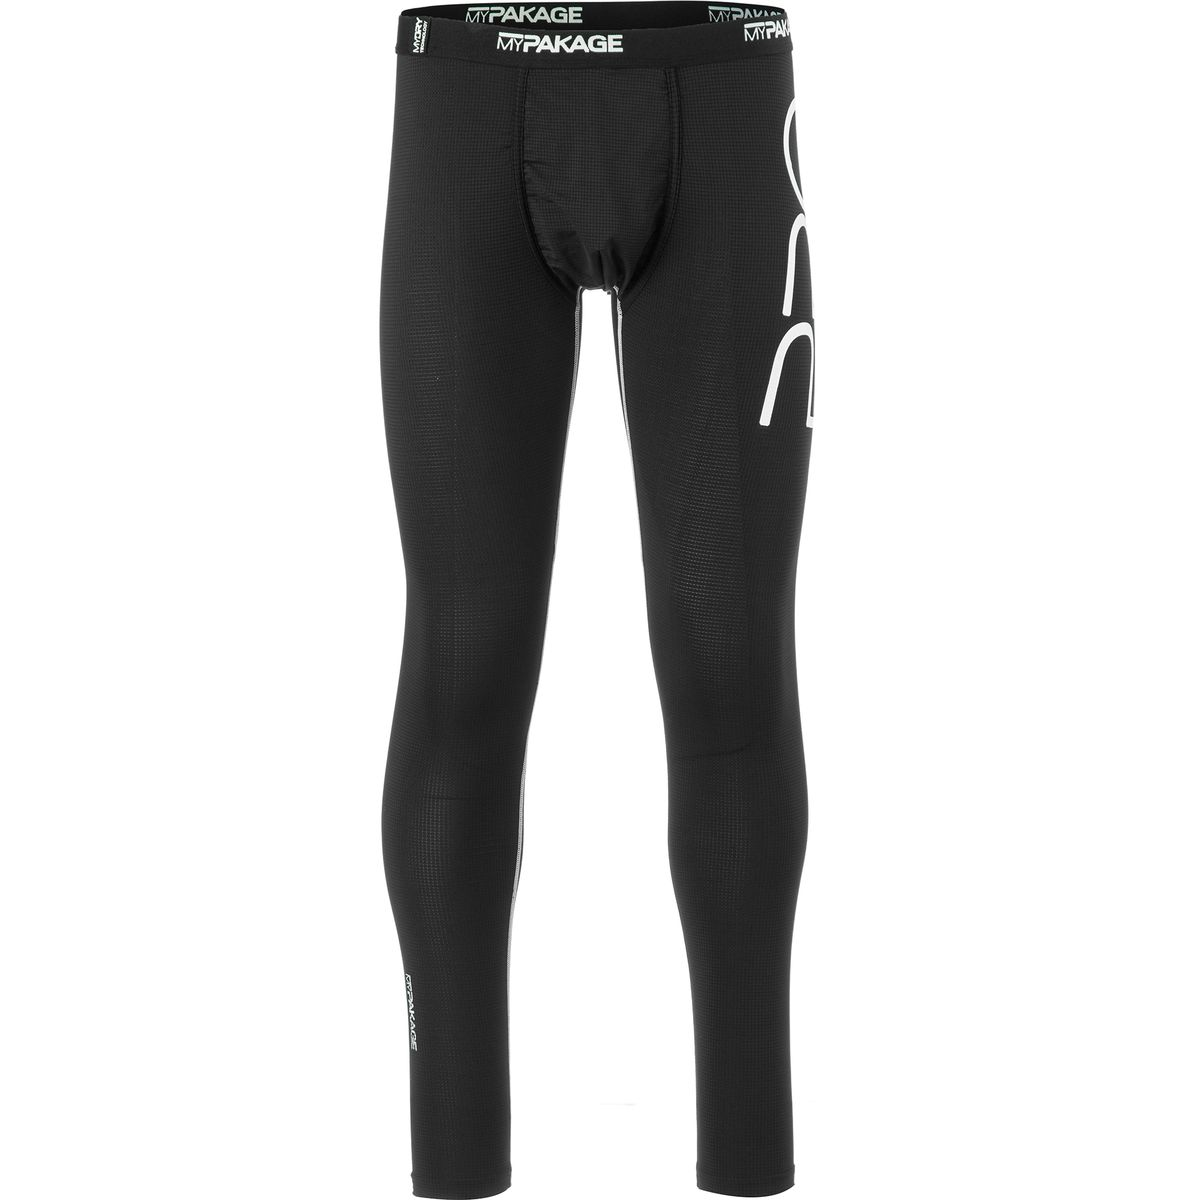 MyPakage Pro Series First Layer Tight - Men's Black White, S